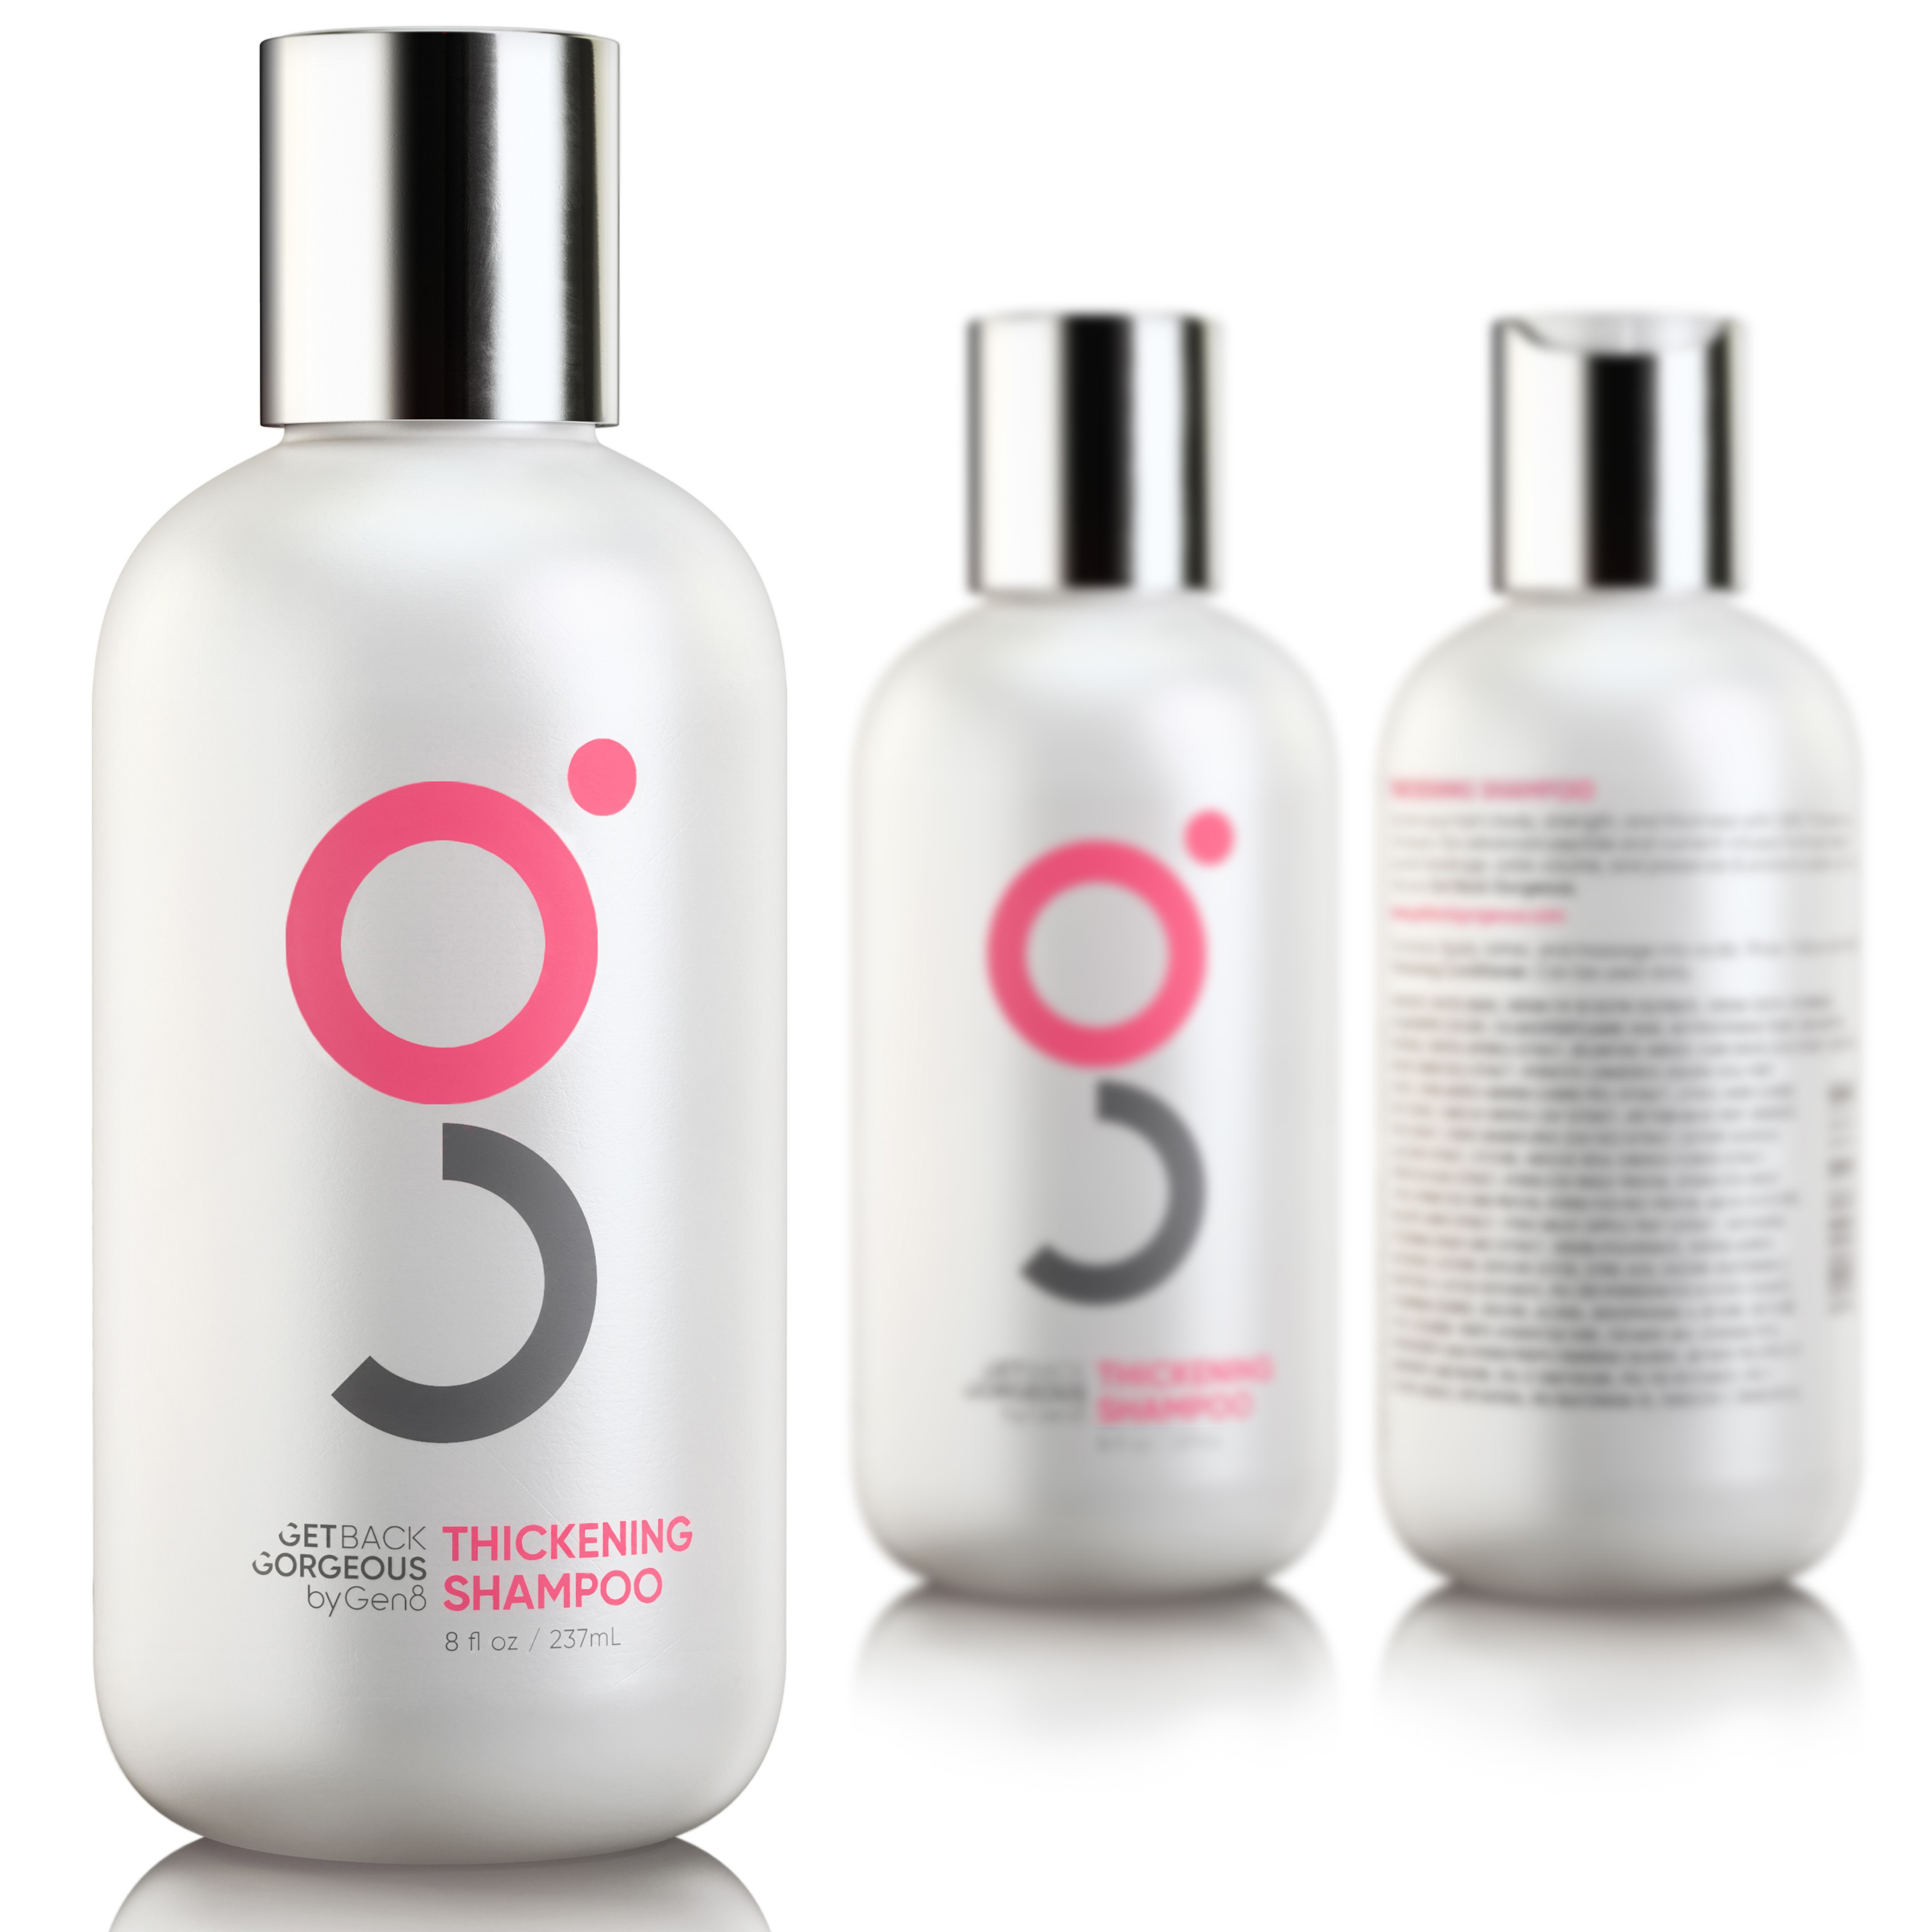 Get Back Gorgeous Shampoo Renders (for 2 shampoos)